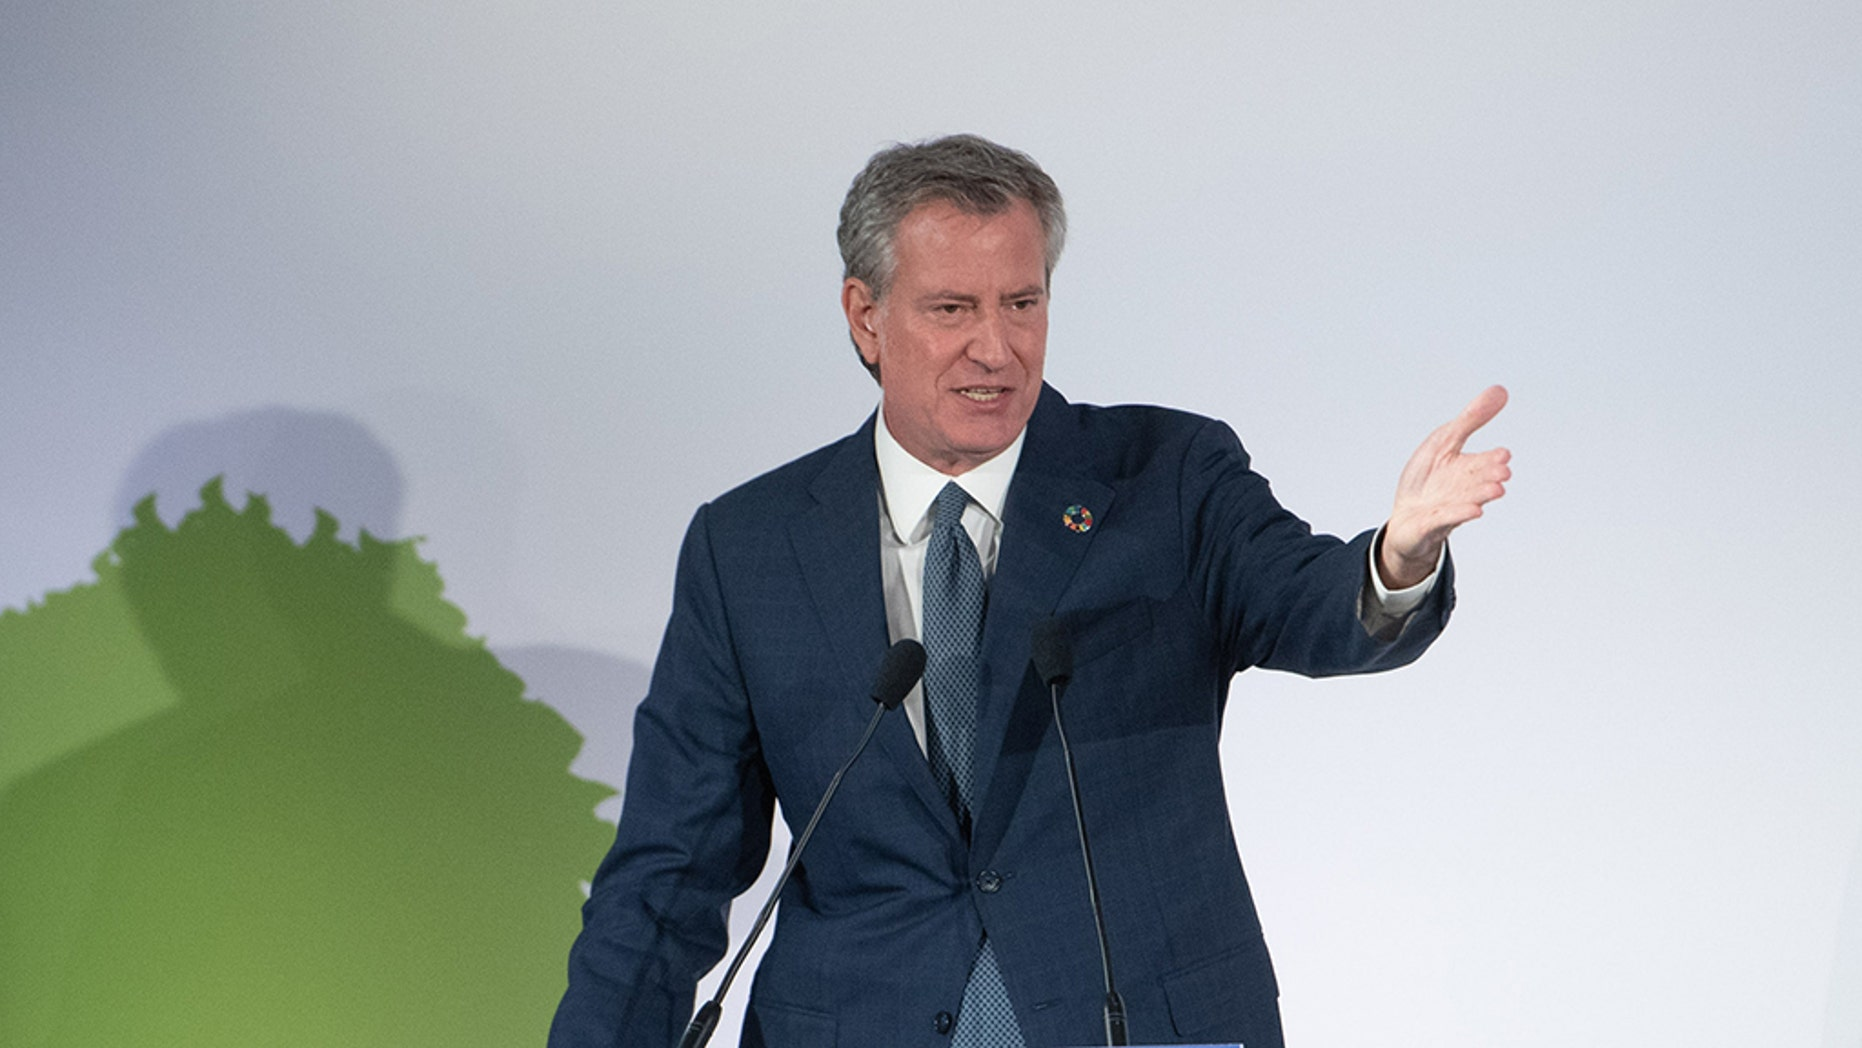 NYC Mayor Bill De Blasio Dismisses Homeless Activist: I'm 'Doing My Workout'